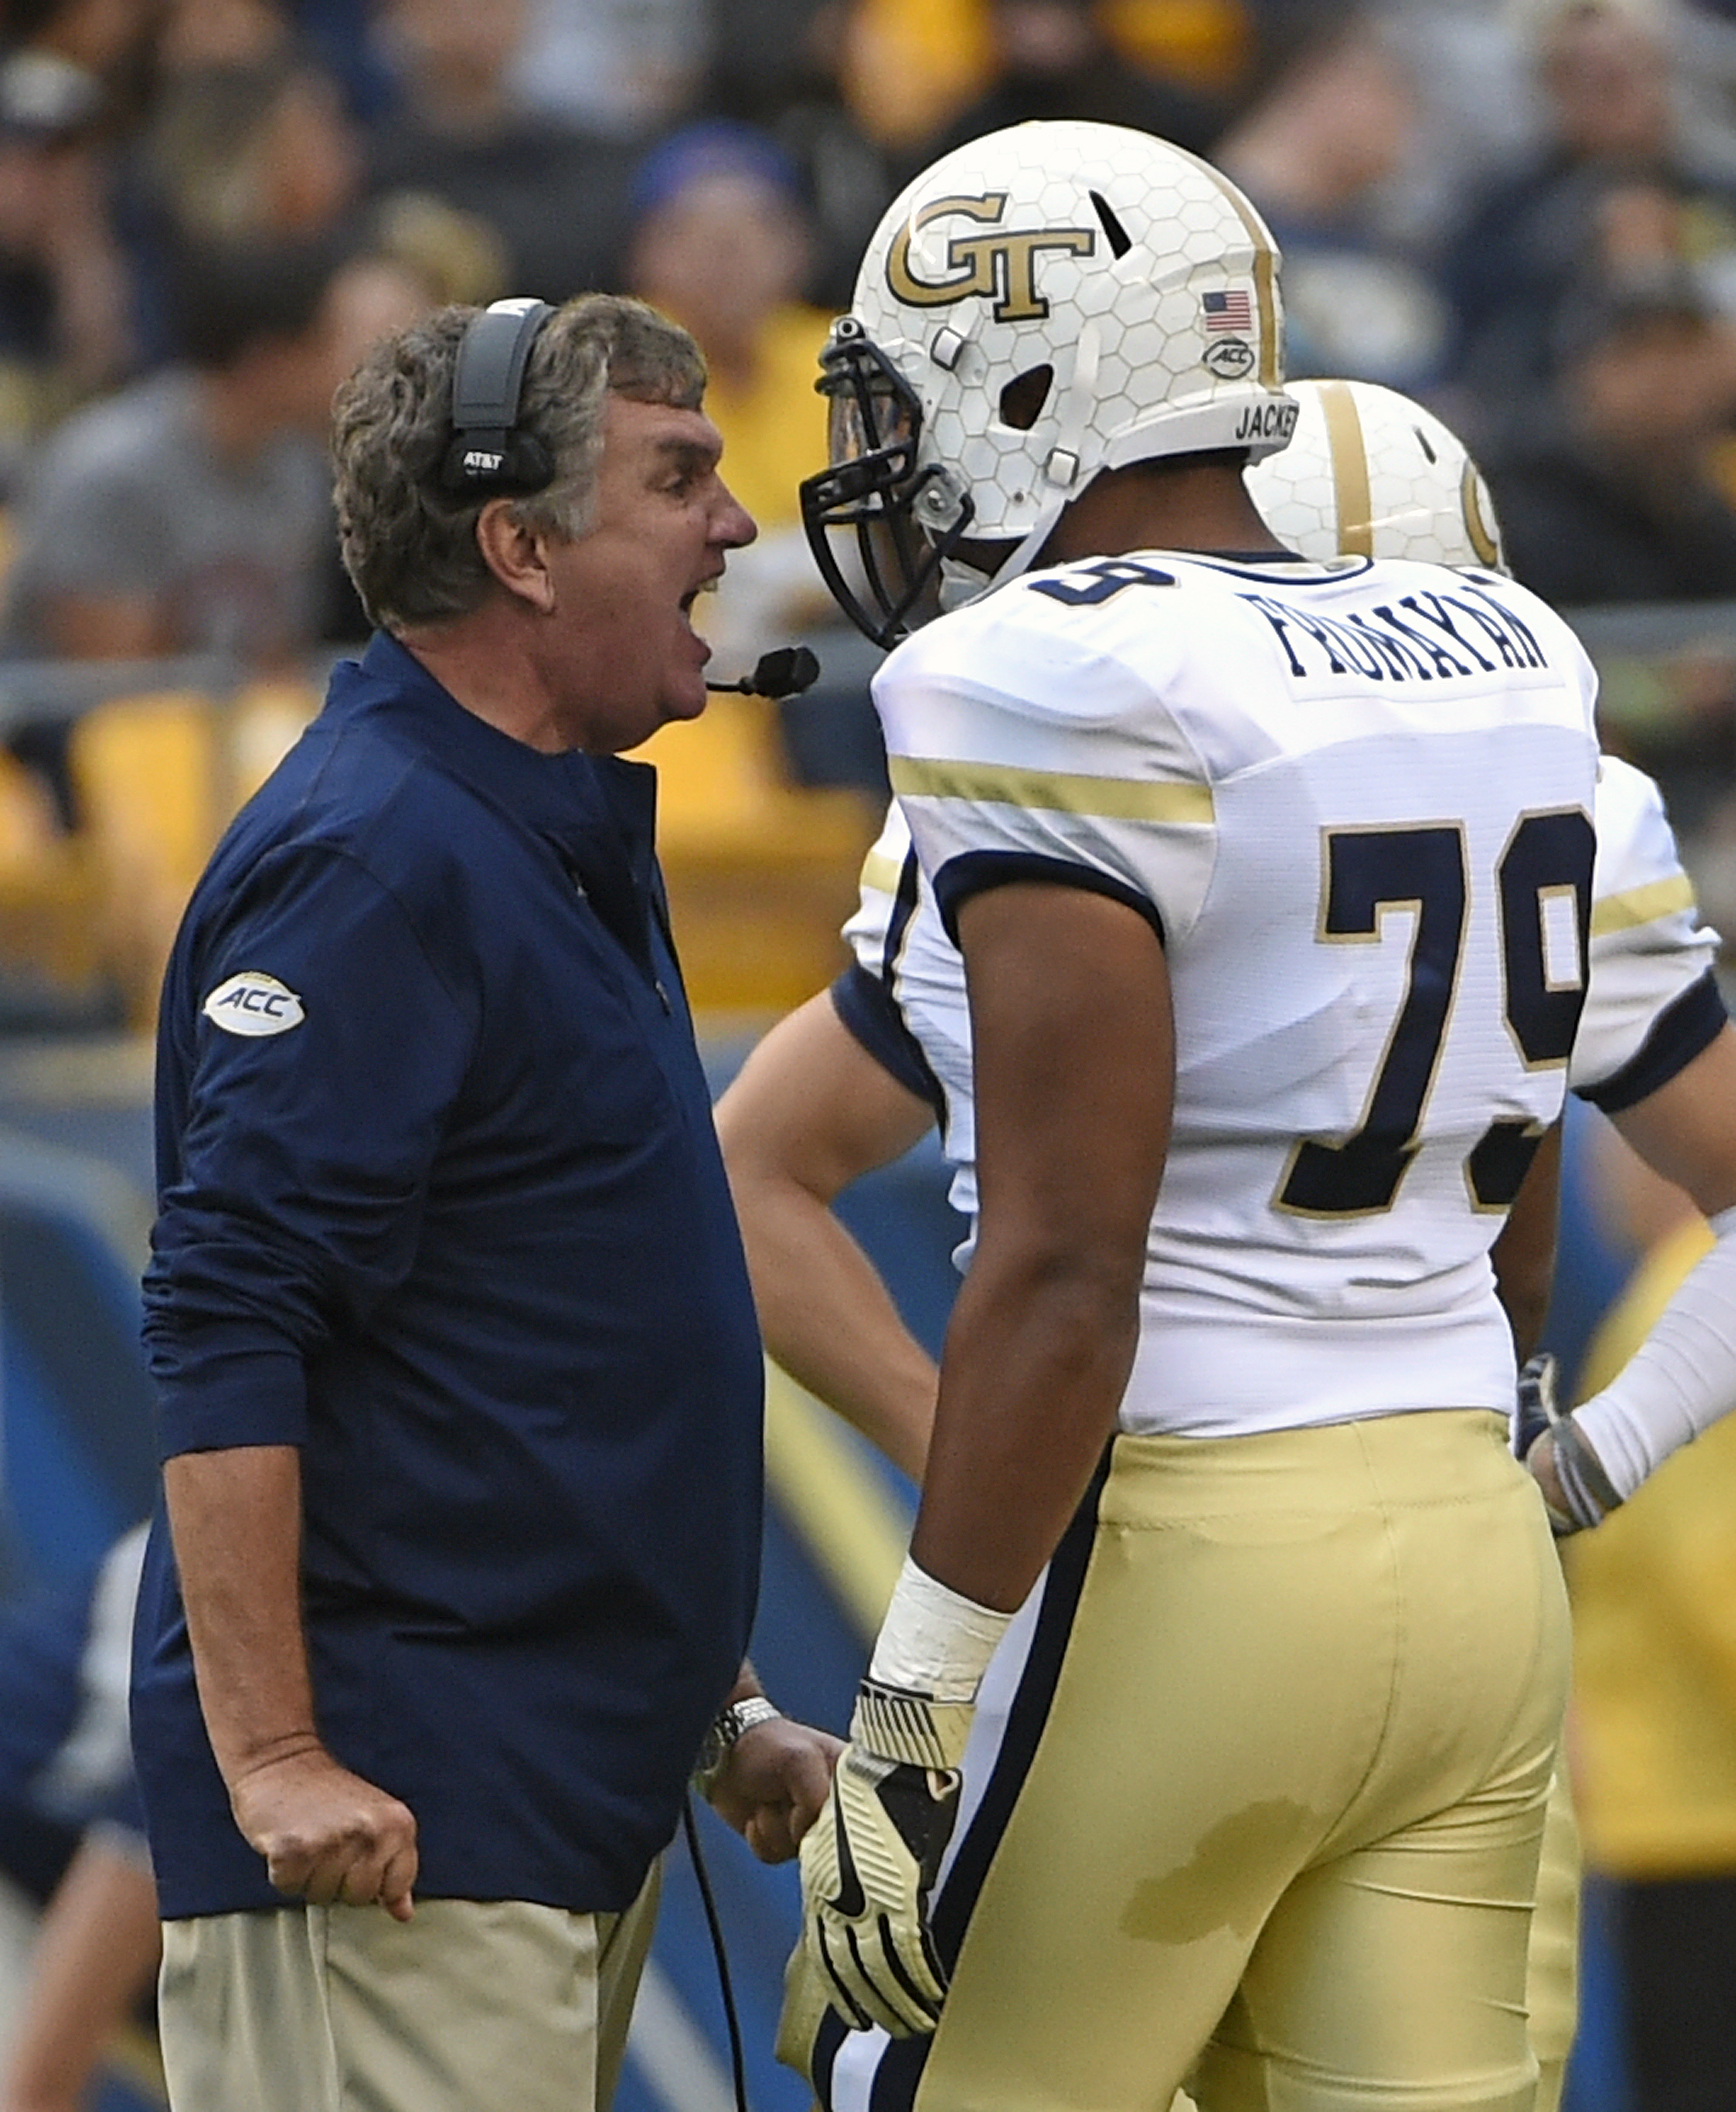 Georgia Tech head coach Paul Johnson shouts at offensive lineman Eason Fromayan (79) during the second half of an NCAA college football game in Pittsburgh, Saturday, Oct. 8, 2016. (AP Photo/Fred Vuich)